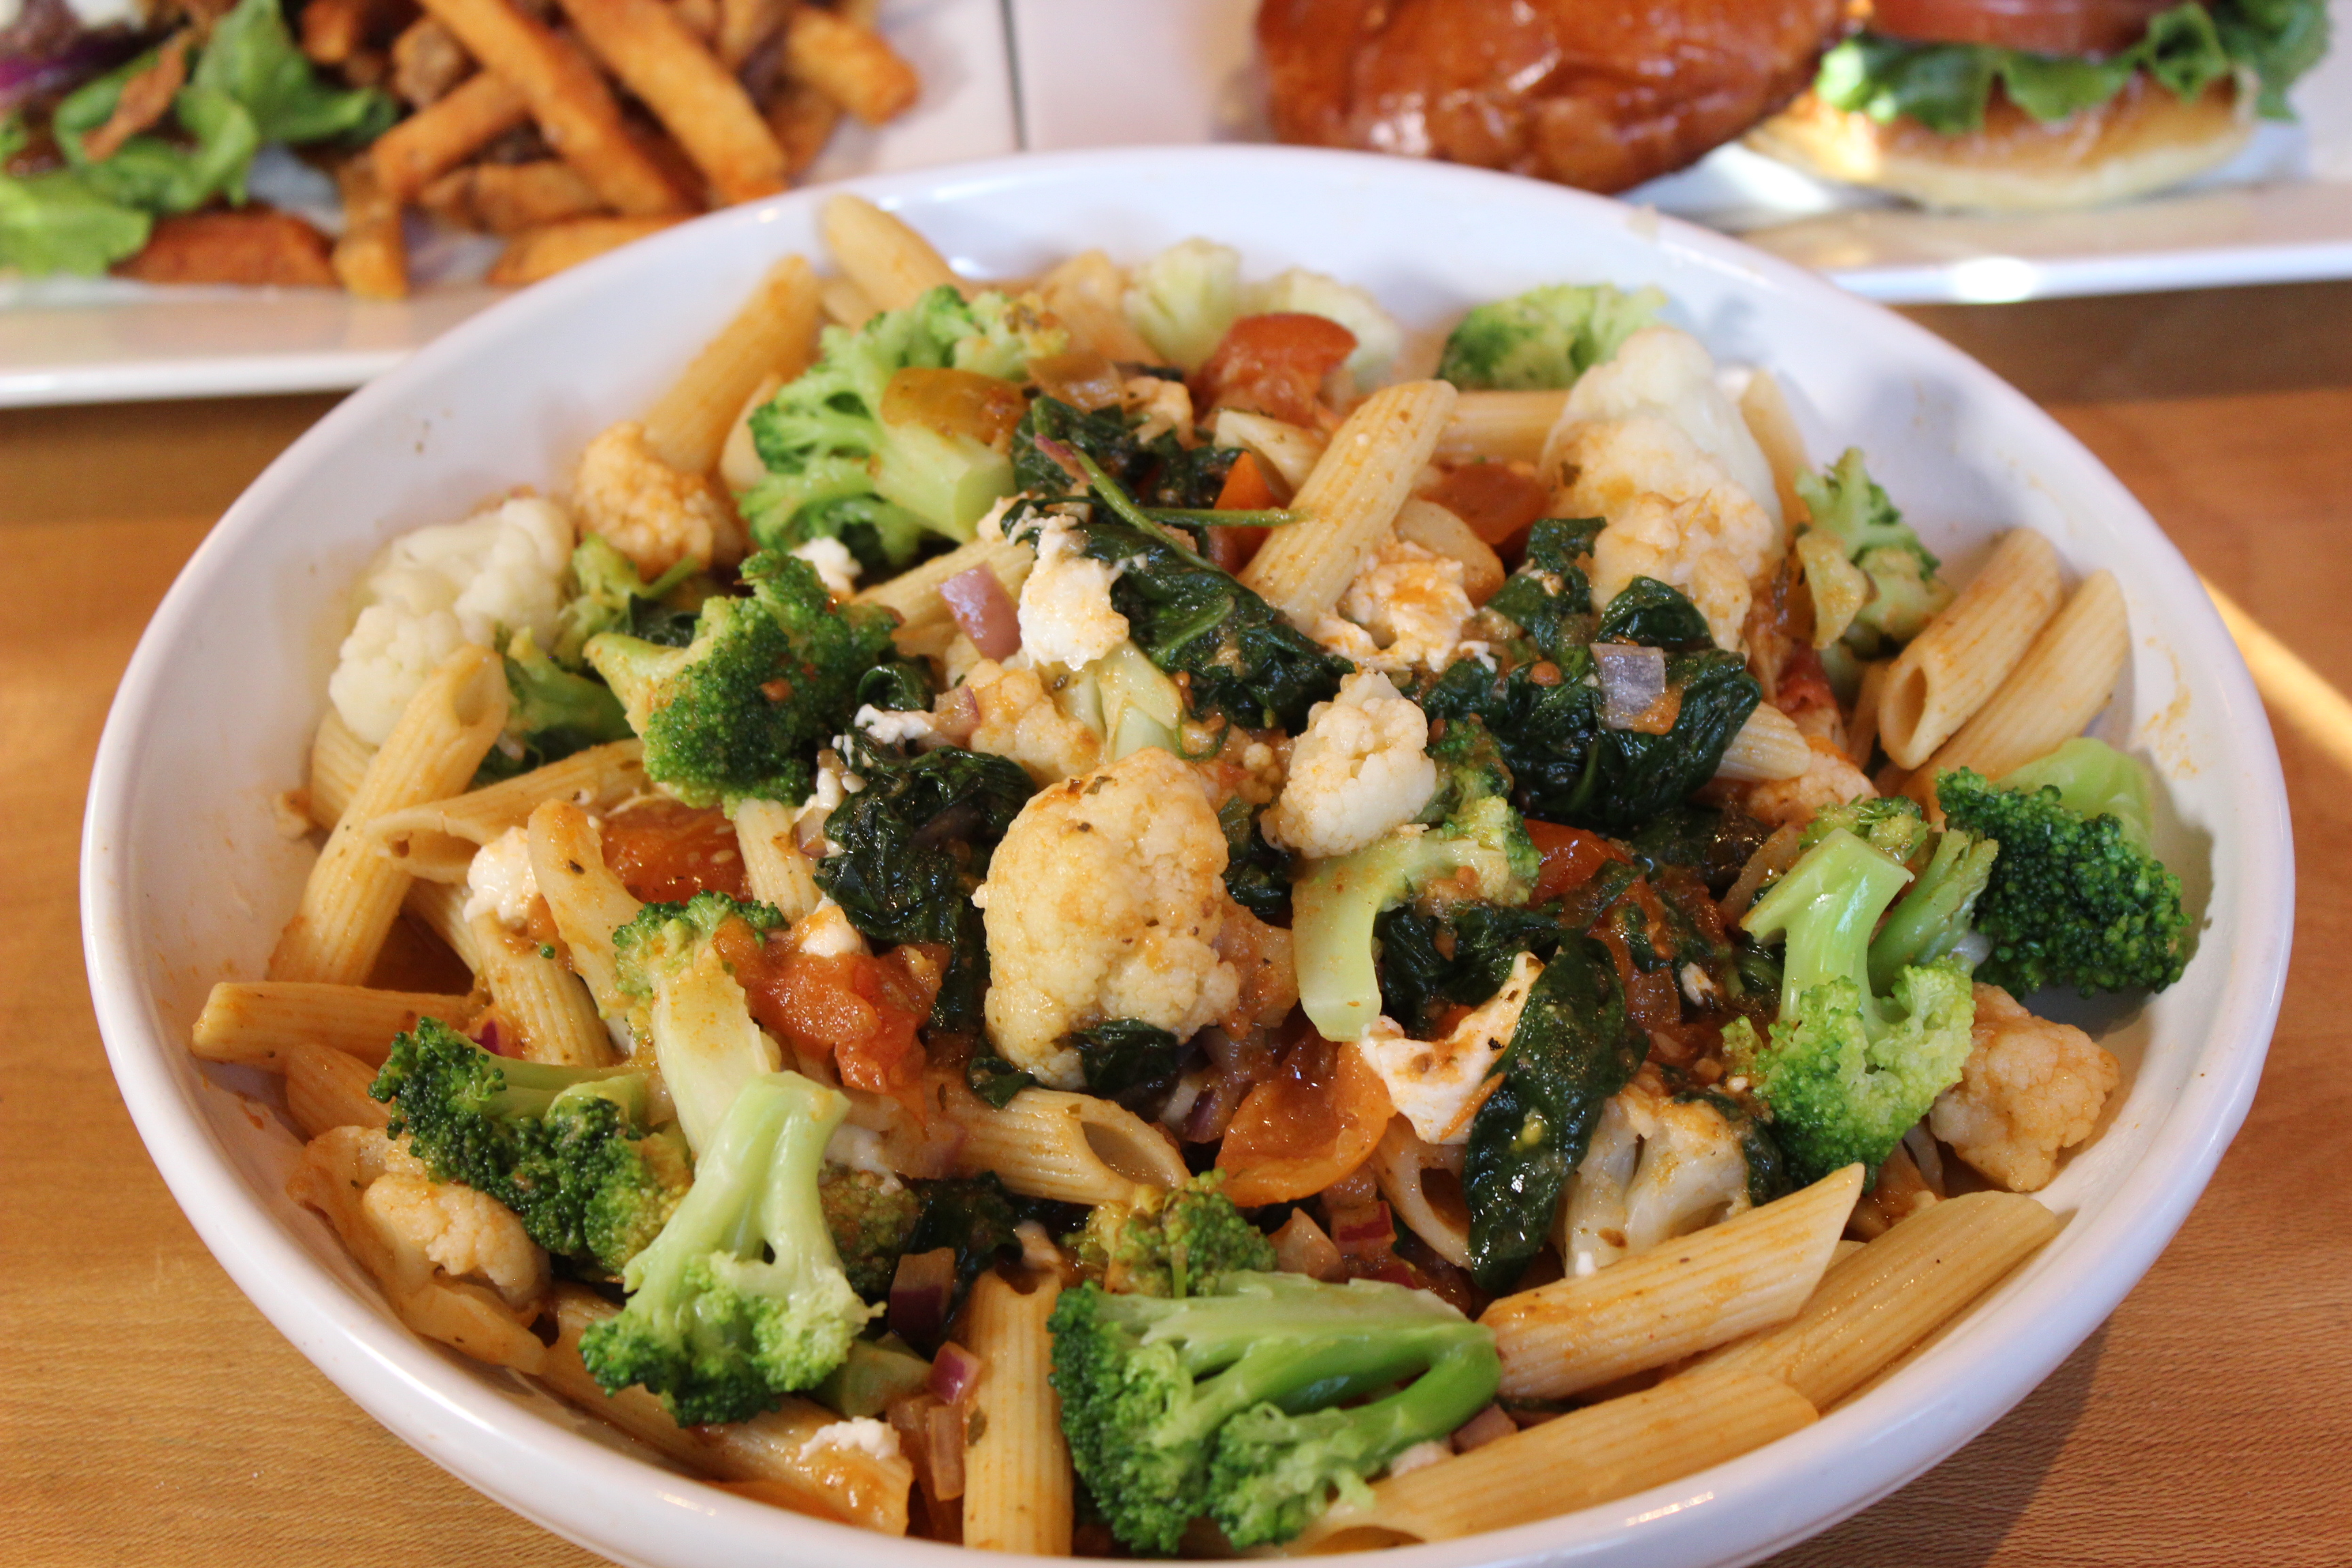 Pasta dish hilltown tavern roxborough bar